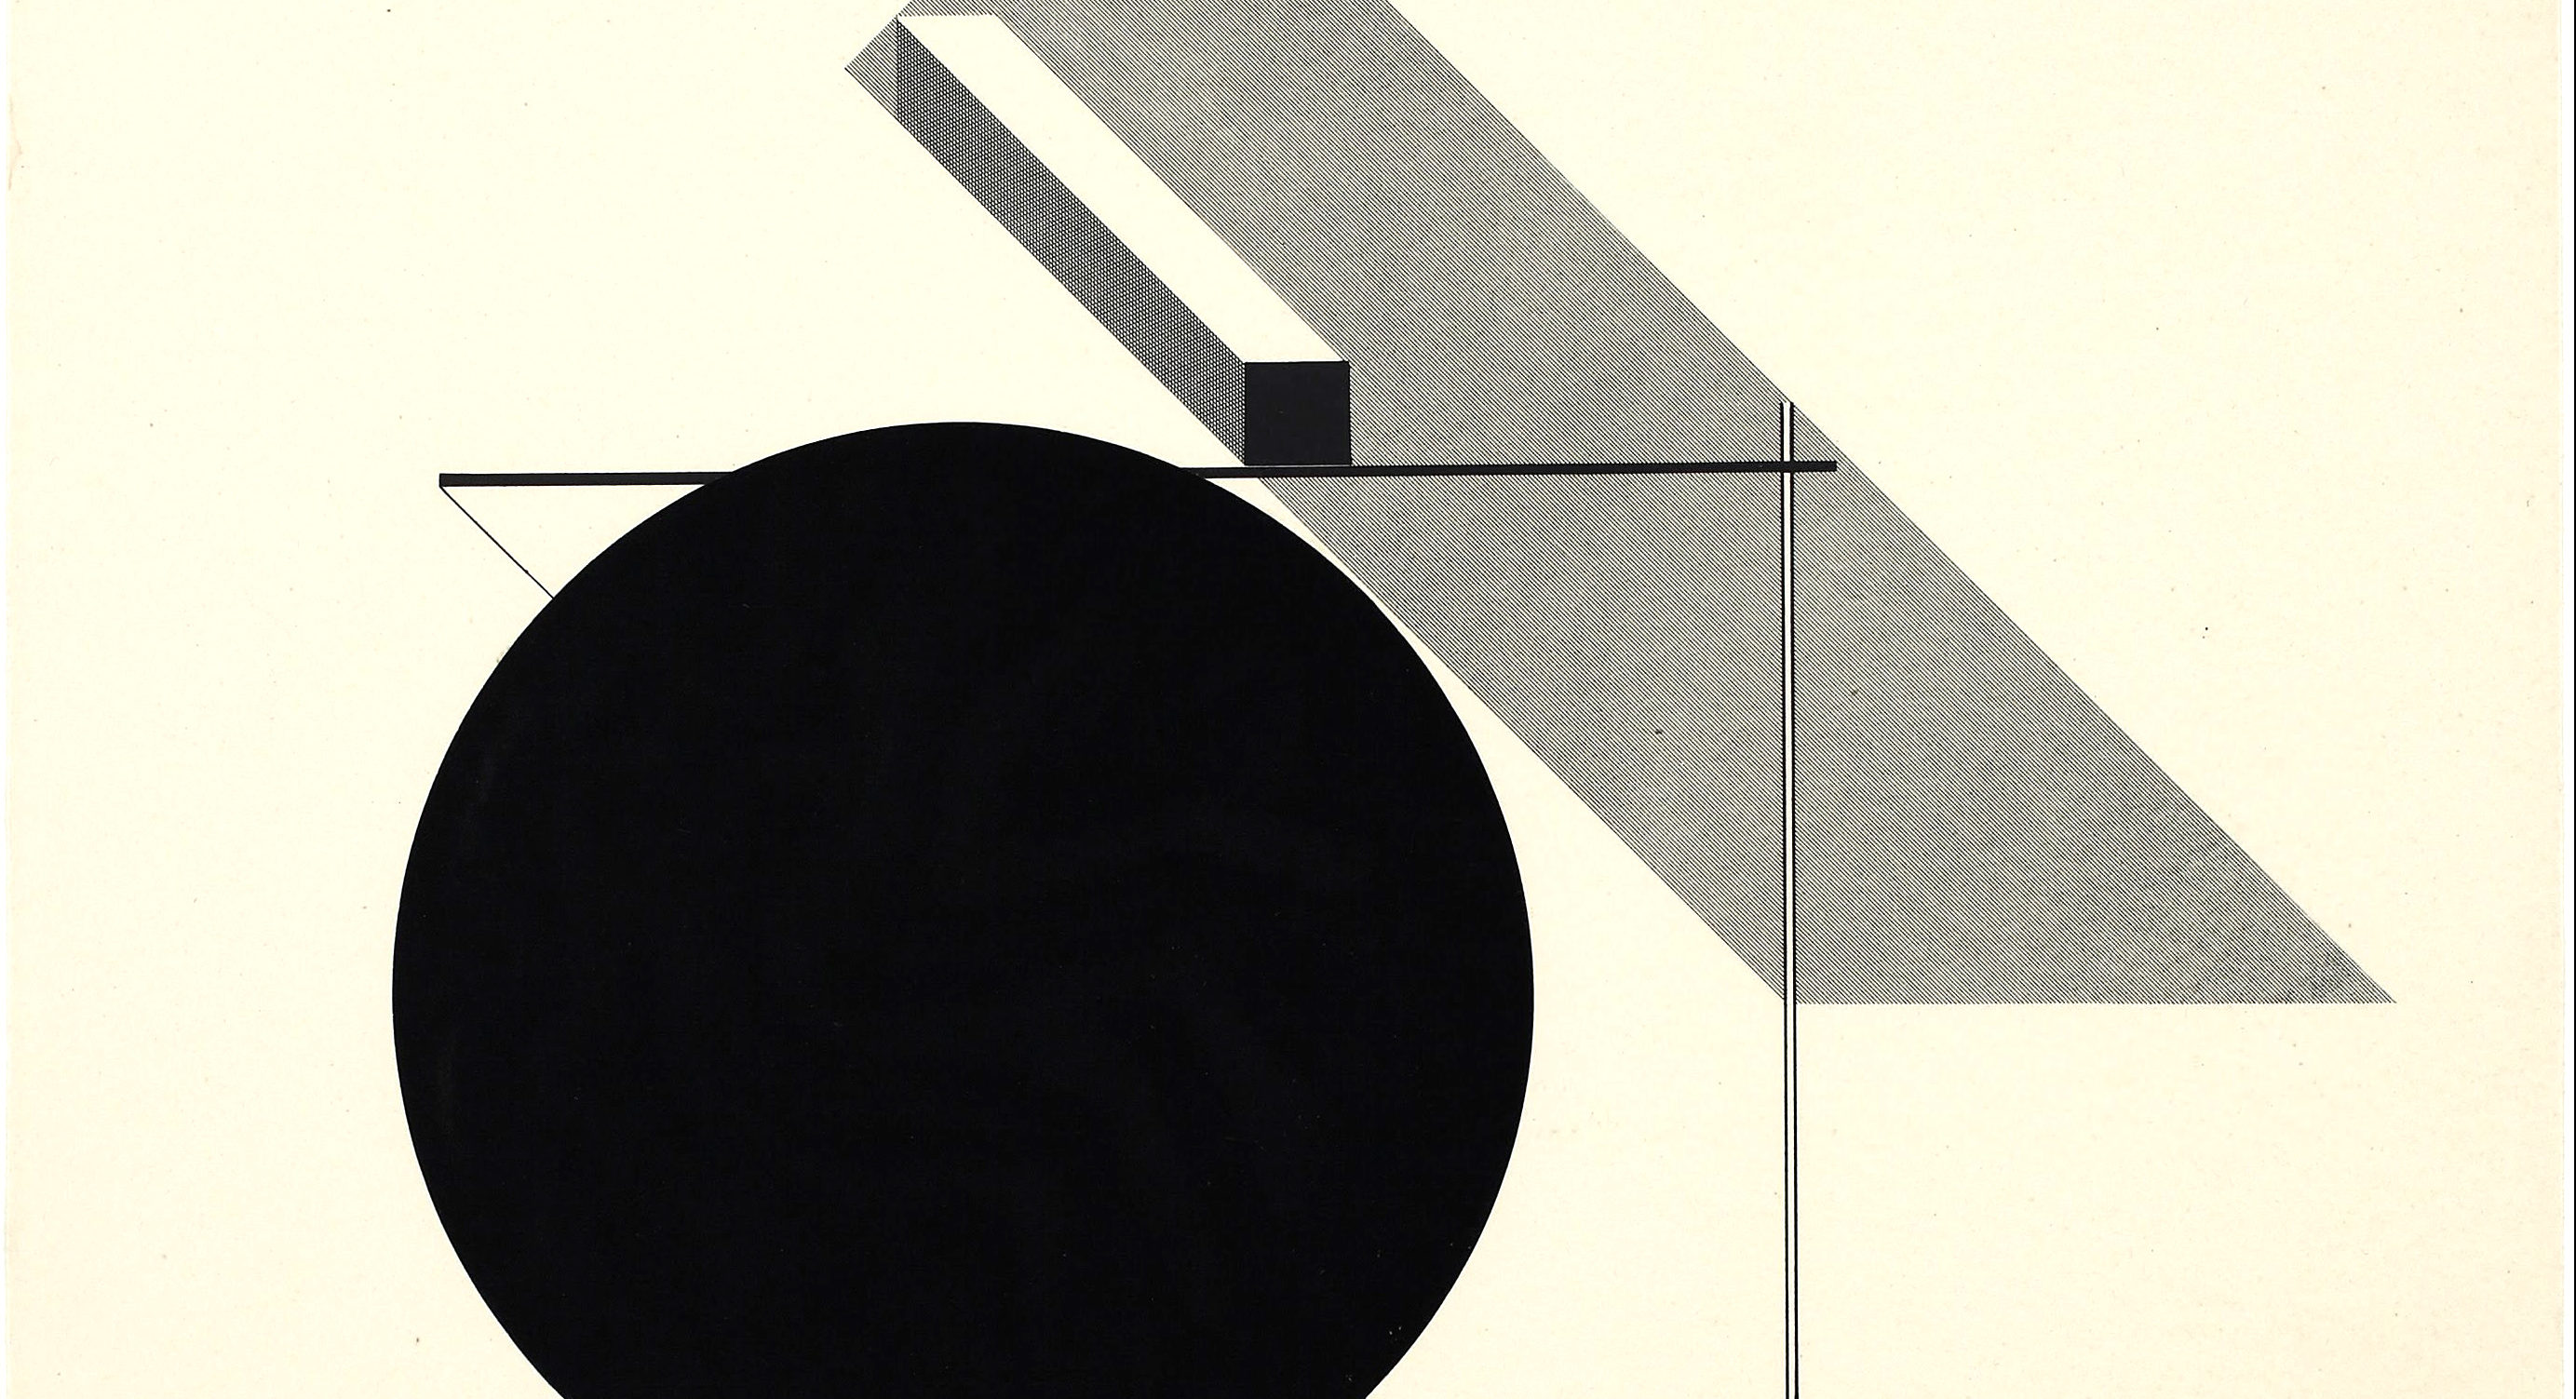 Lazar_El_Lissitzky_-_Kestnermappe_Proun,_Rob._Levnis_and_Chapman_GmbH_Hannover_-5_-_Google_Art_Project-labo-typo